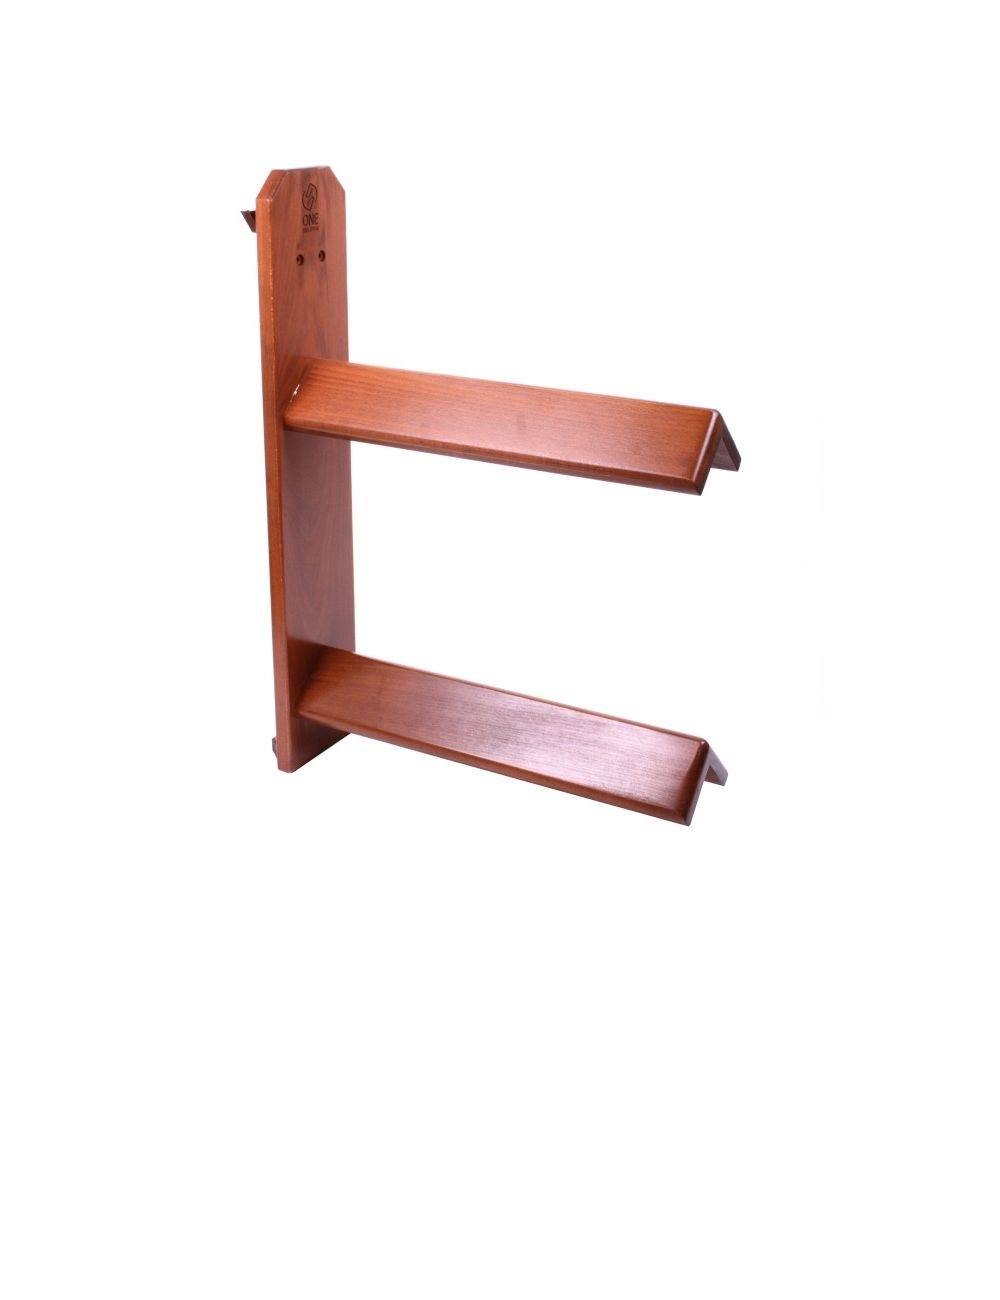 One Equestrian luxury wooden saddle rack